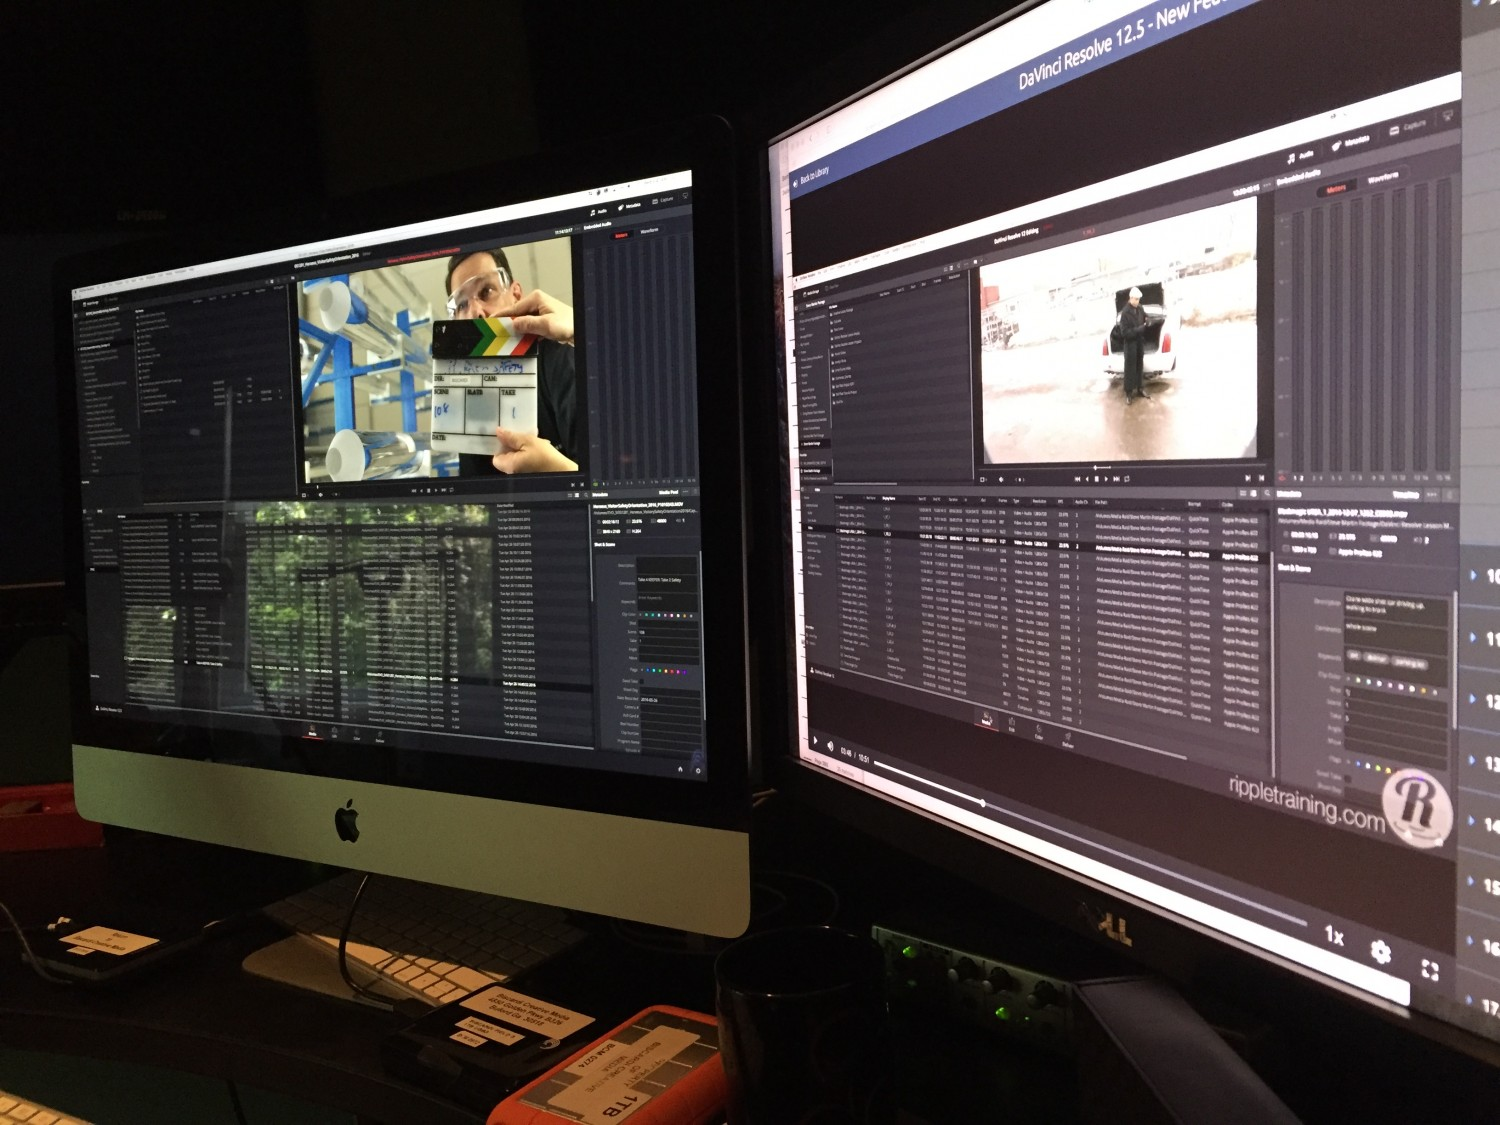 """Alexis Van Hurkmann's """"DaVinci Resolve 12.5 New Features"""" open on the right hand monitor. Entering metadata into my project on the left hand monitor."""